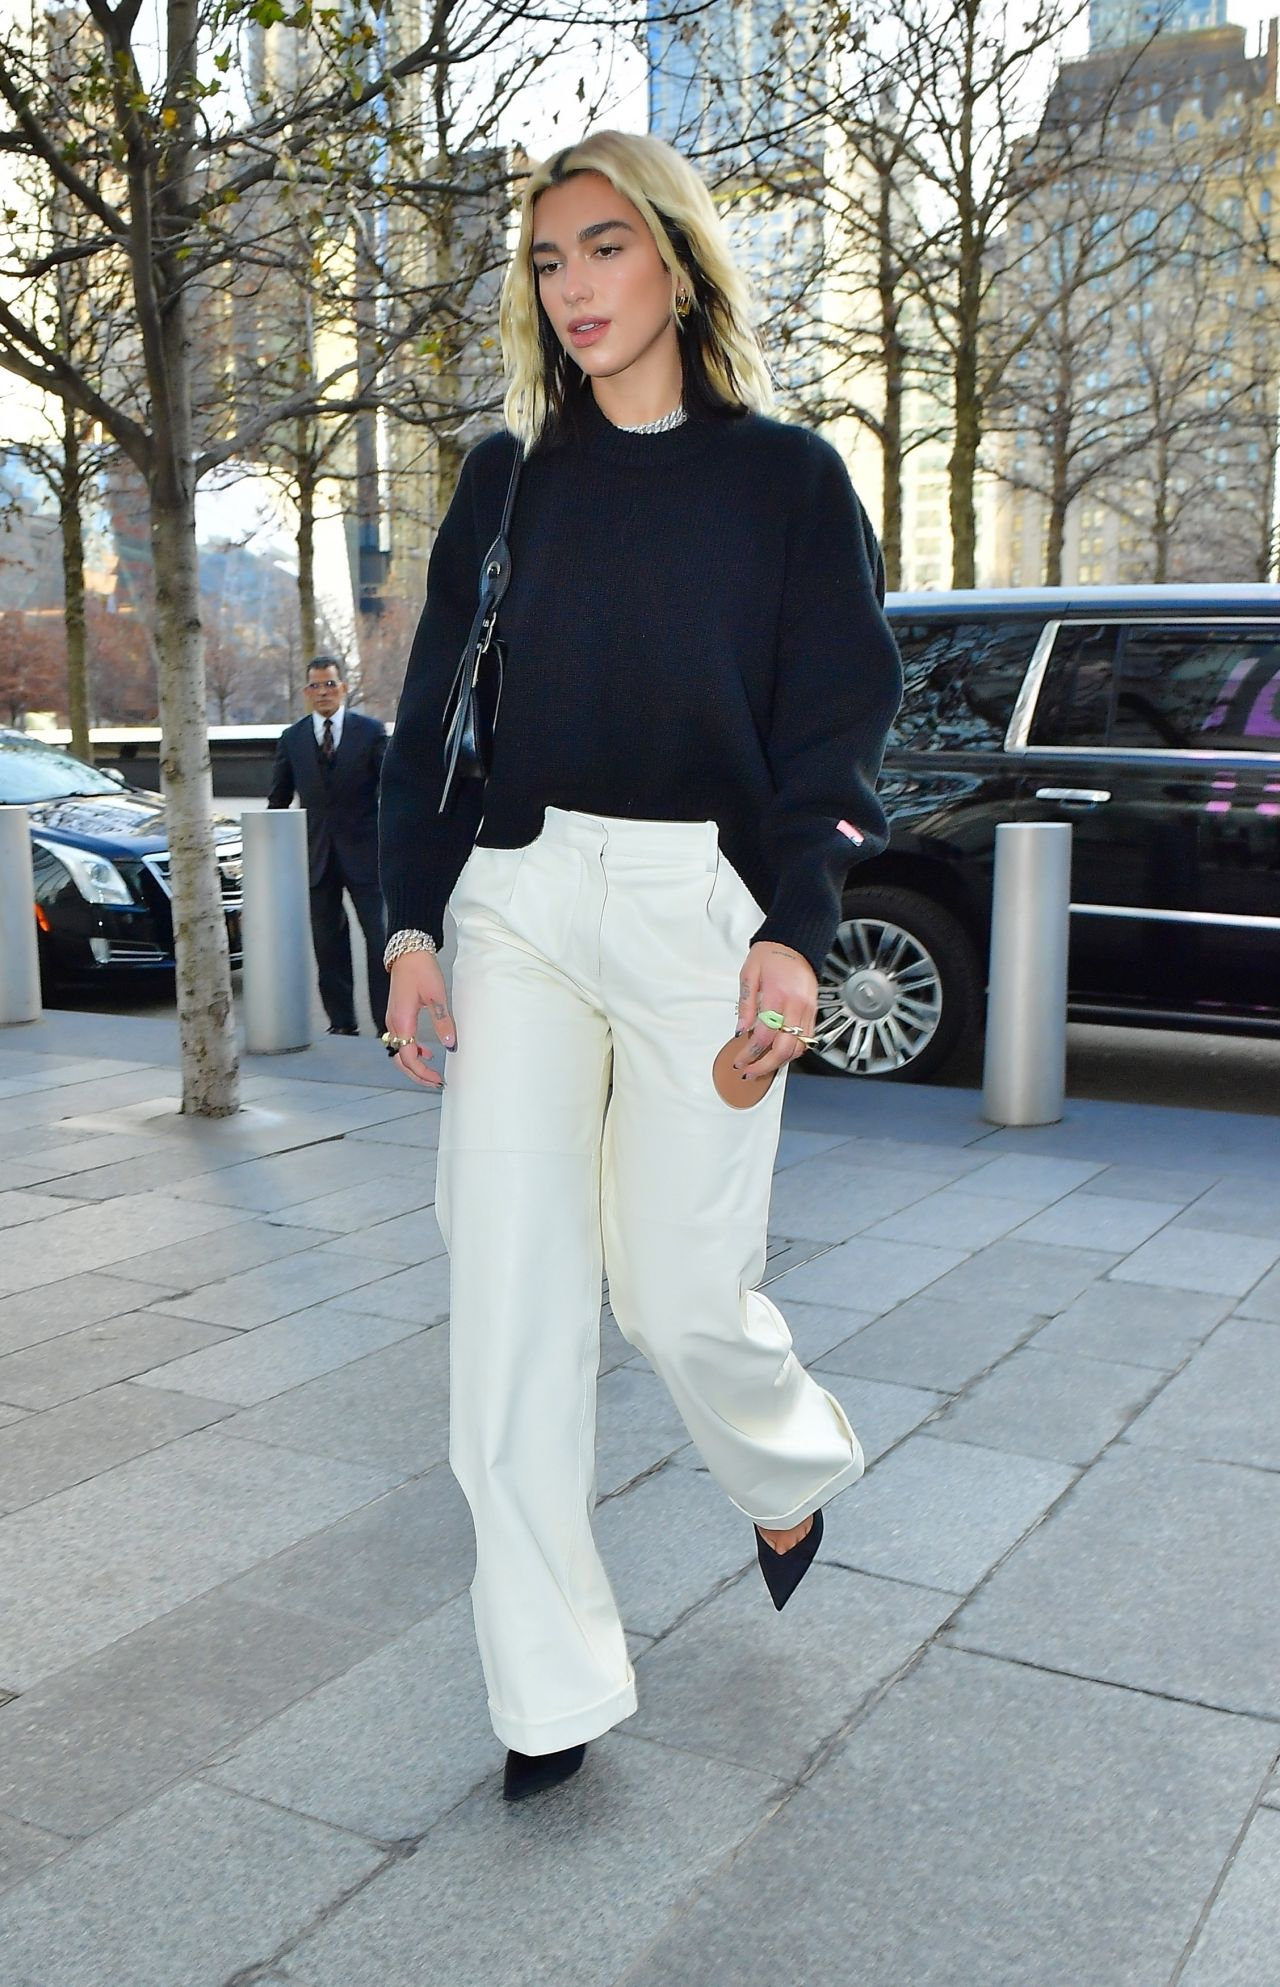 dua-lipa-in-off-white-trousers-out-in-new-york